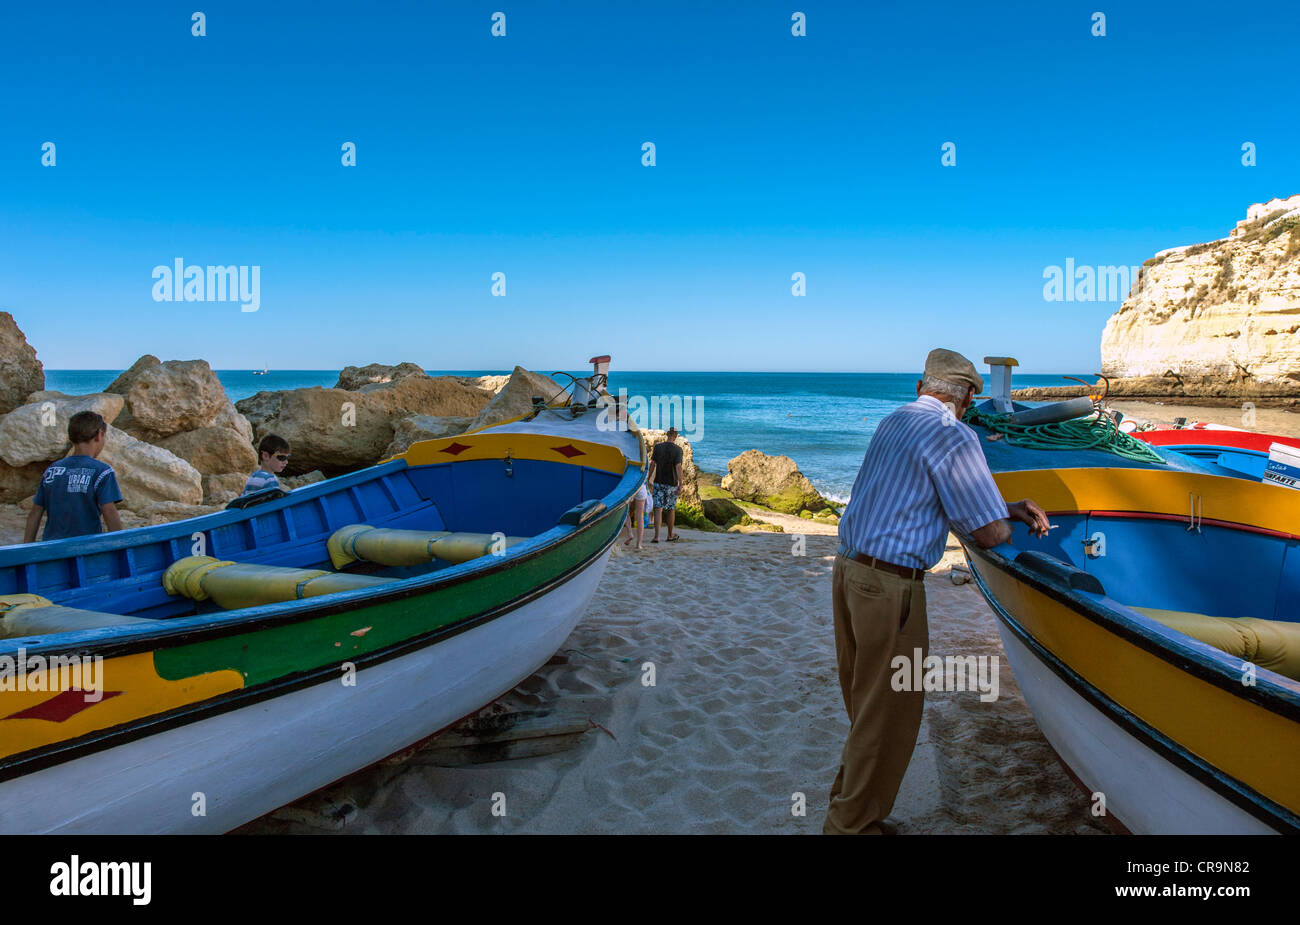 Portugal, Algarve, fishermen on the beach of Carvoeiro - Stock Image